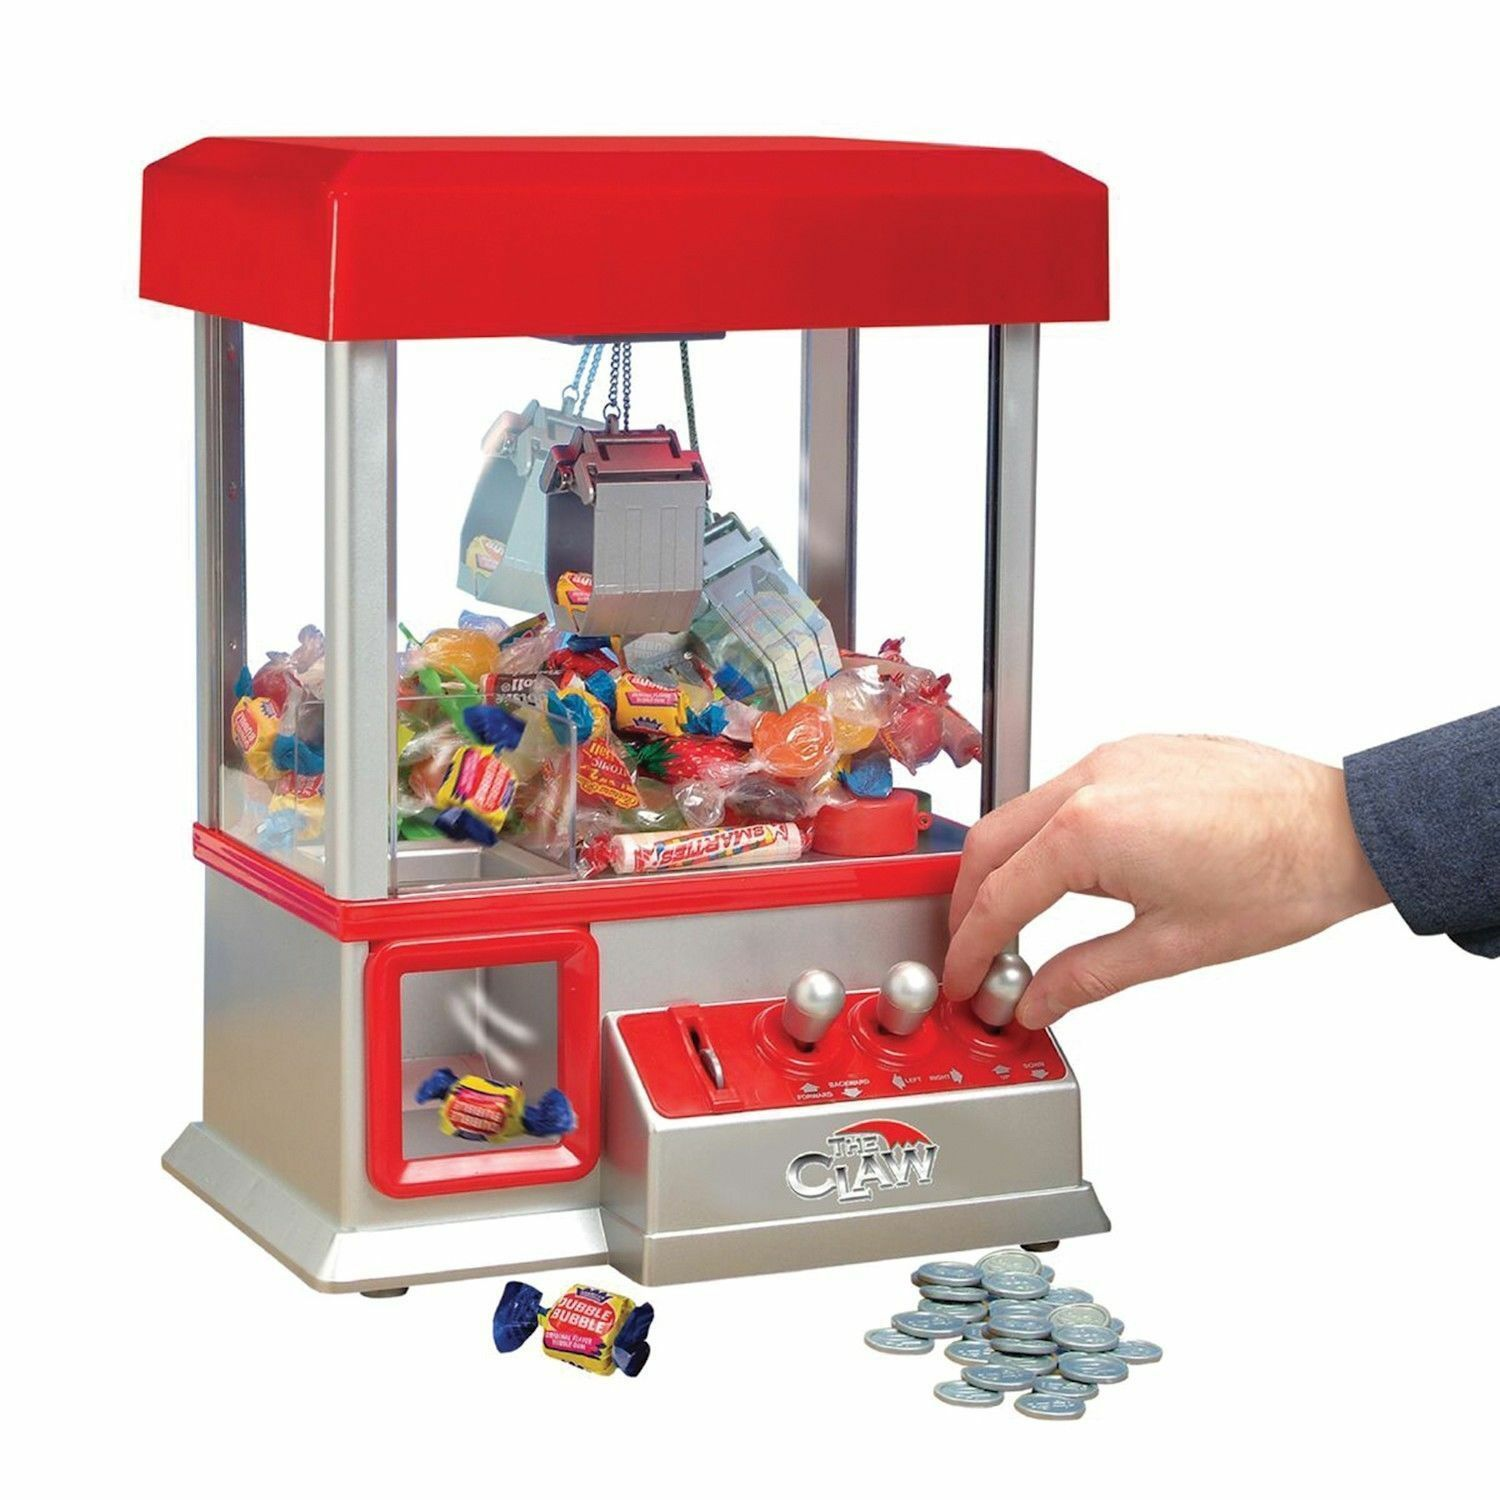 The CLAW Toy Grabber Crane Tabletop Arcade Machine Game Carnival Sounds